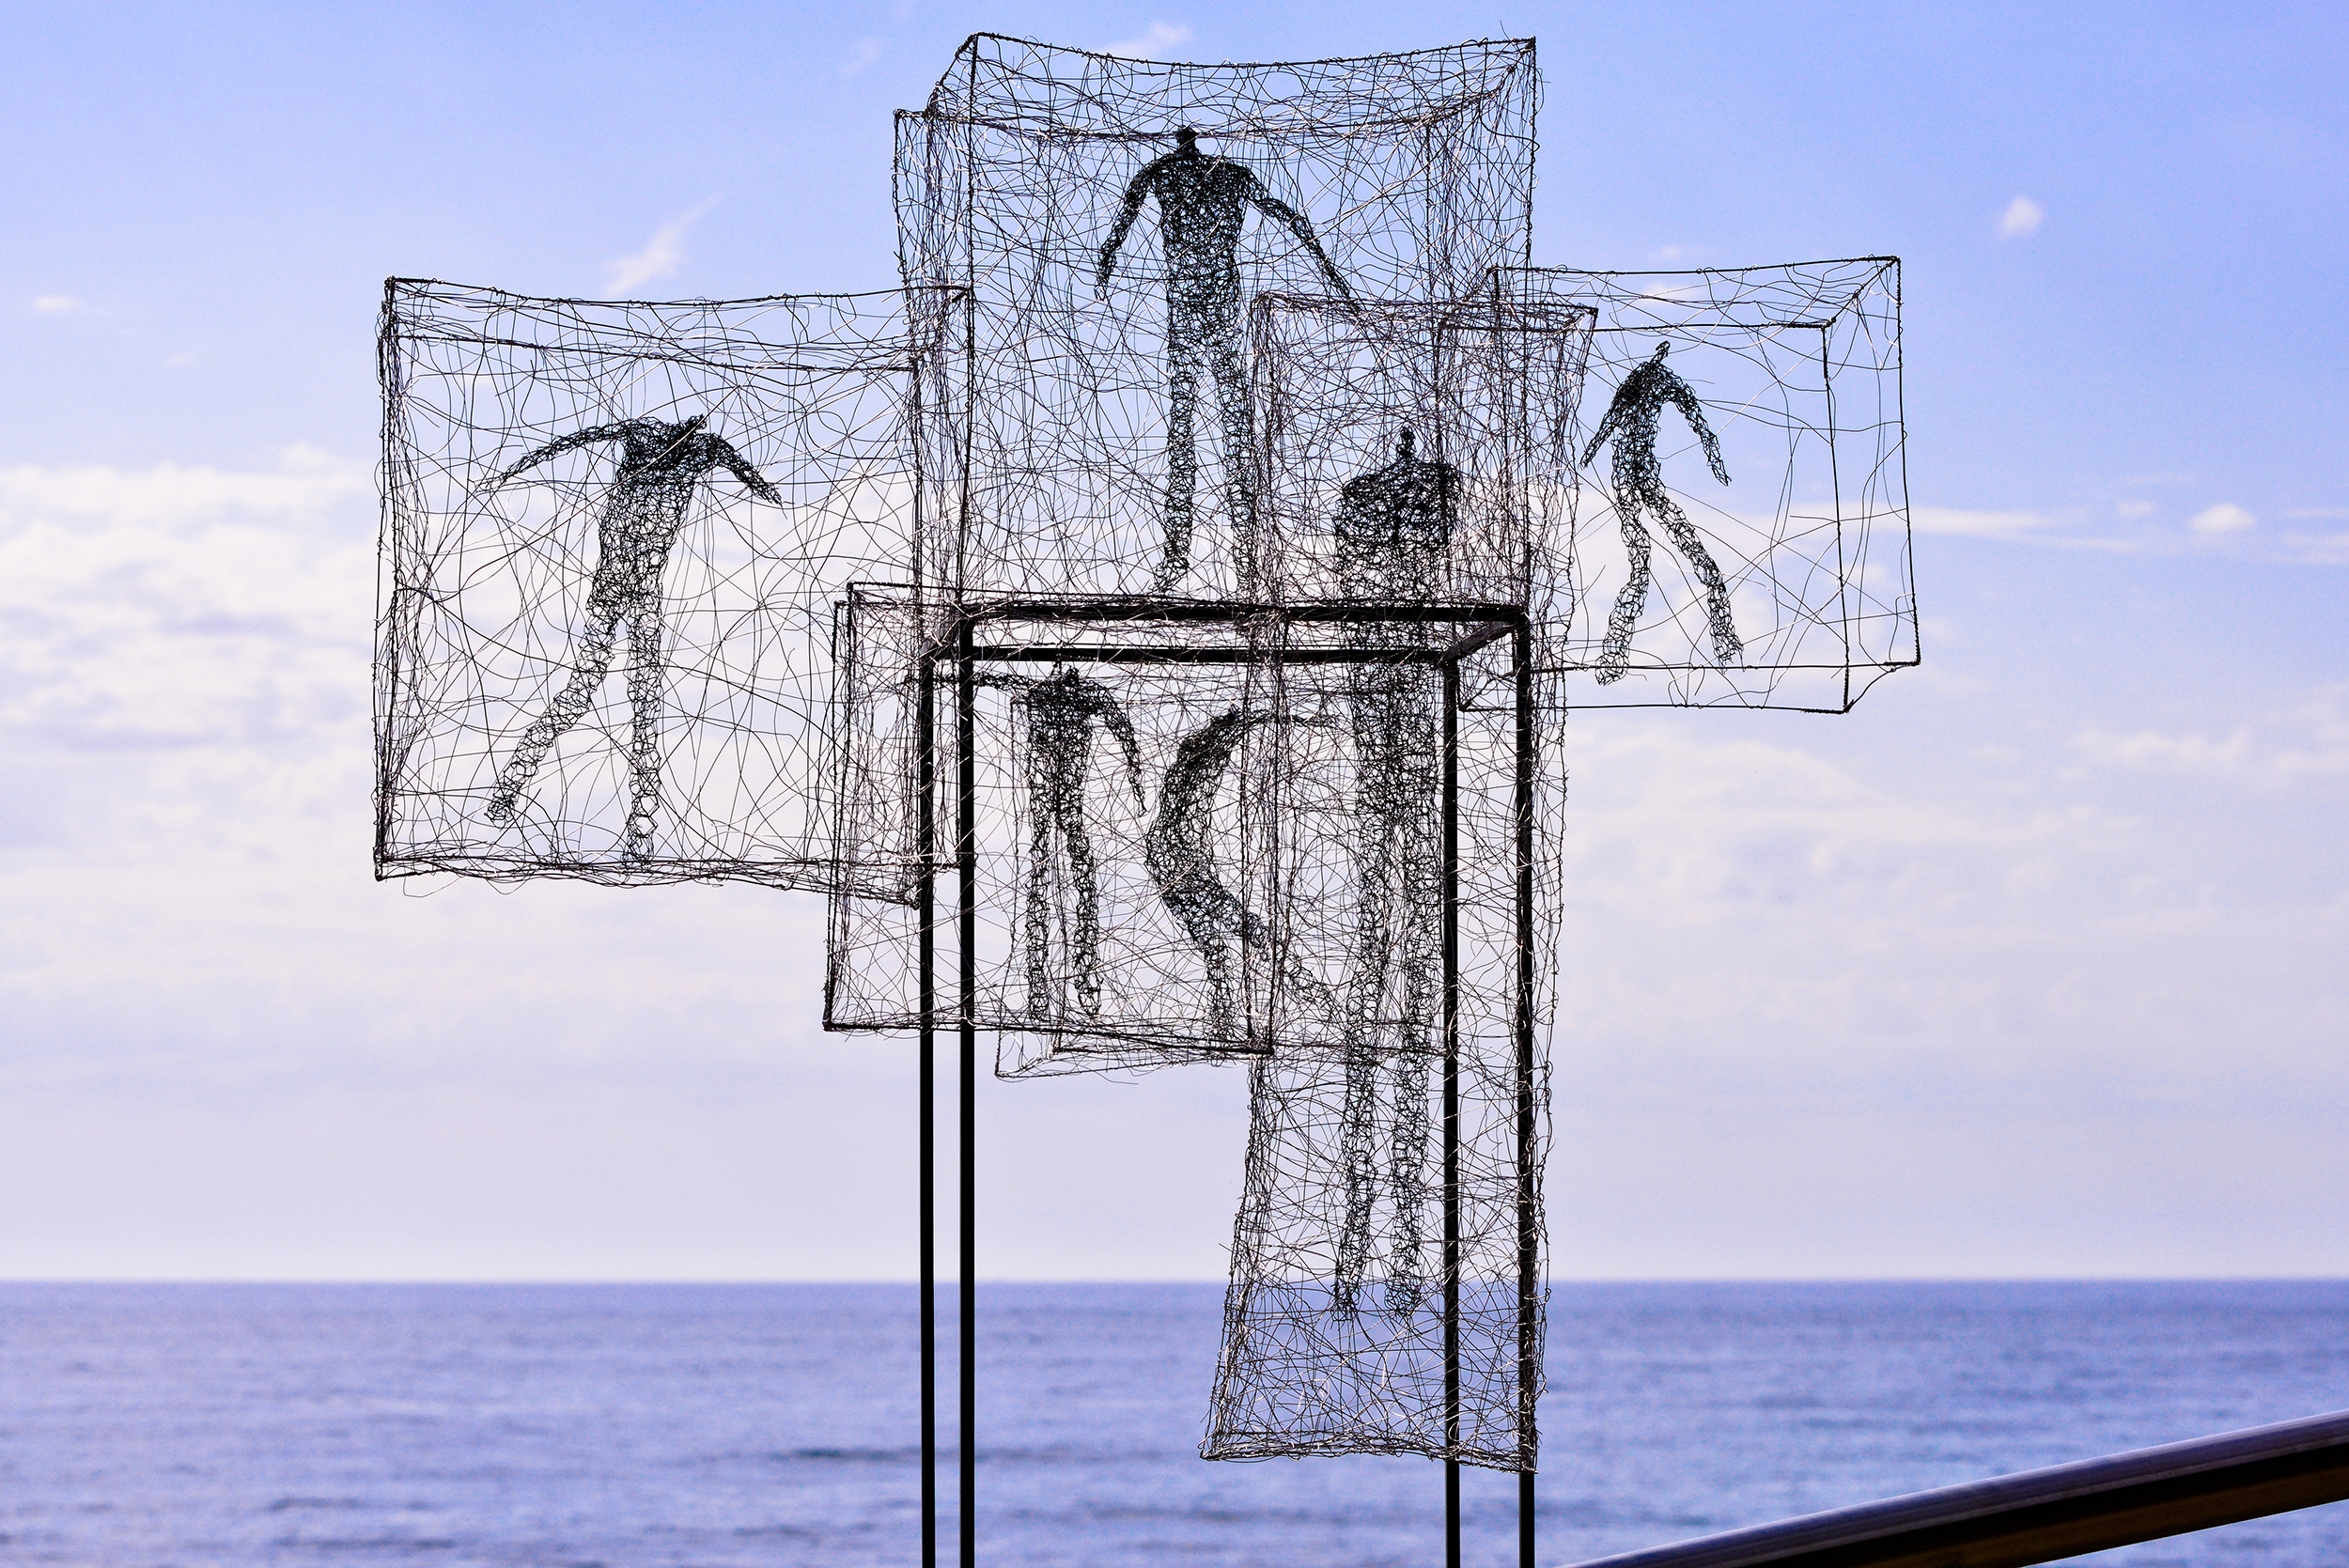 'Listen time passes ' by Barbara Licha – wire sculpture